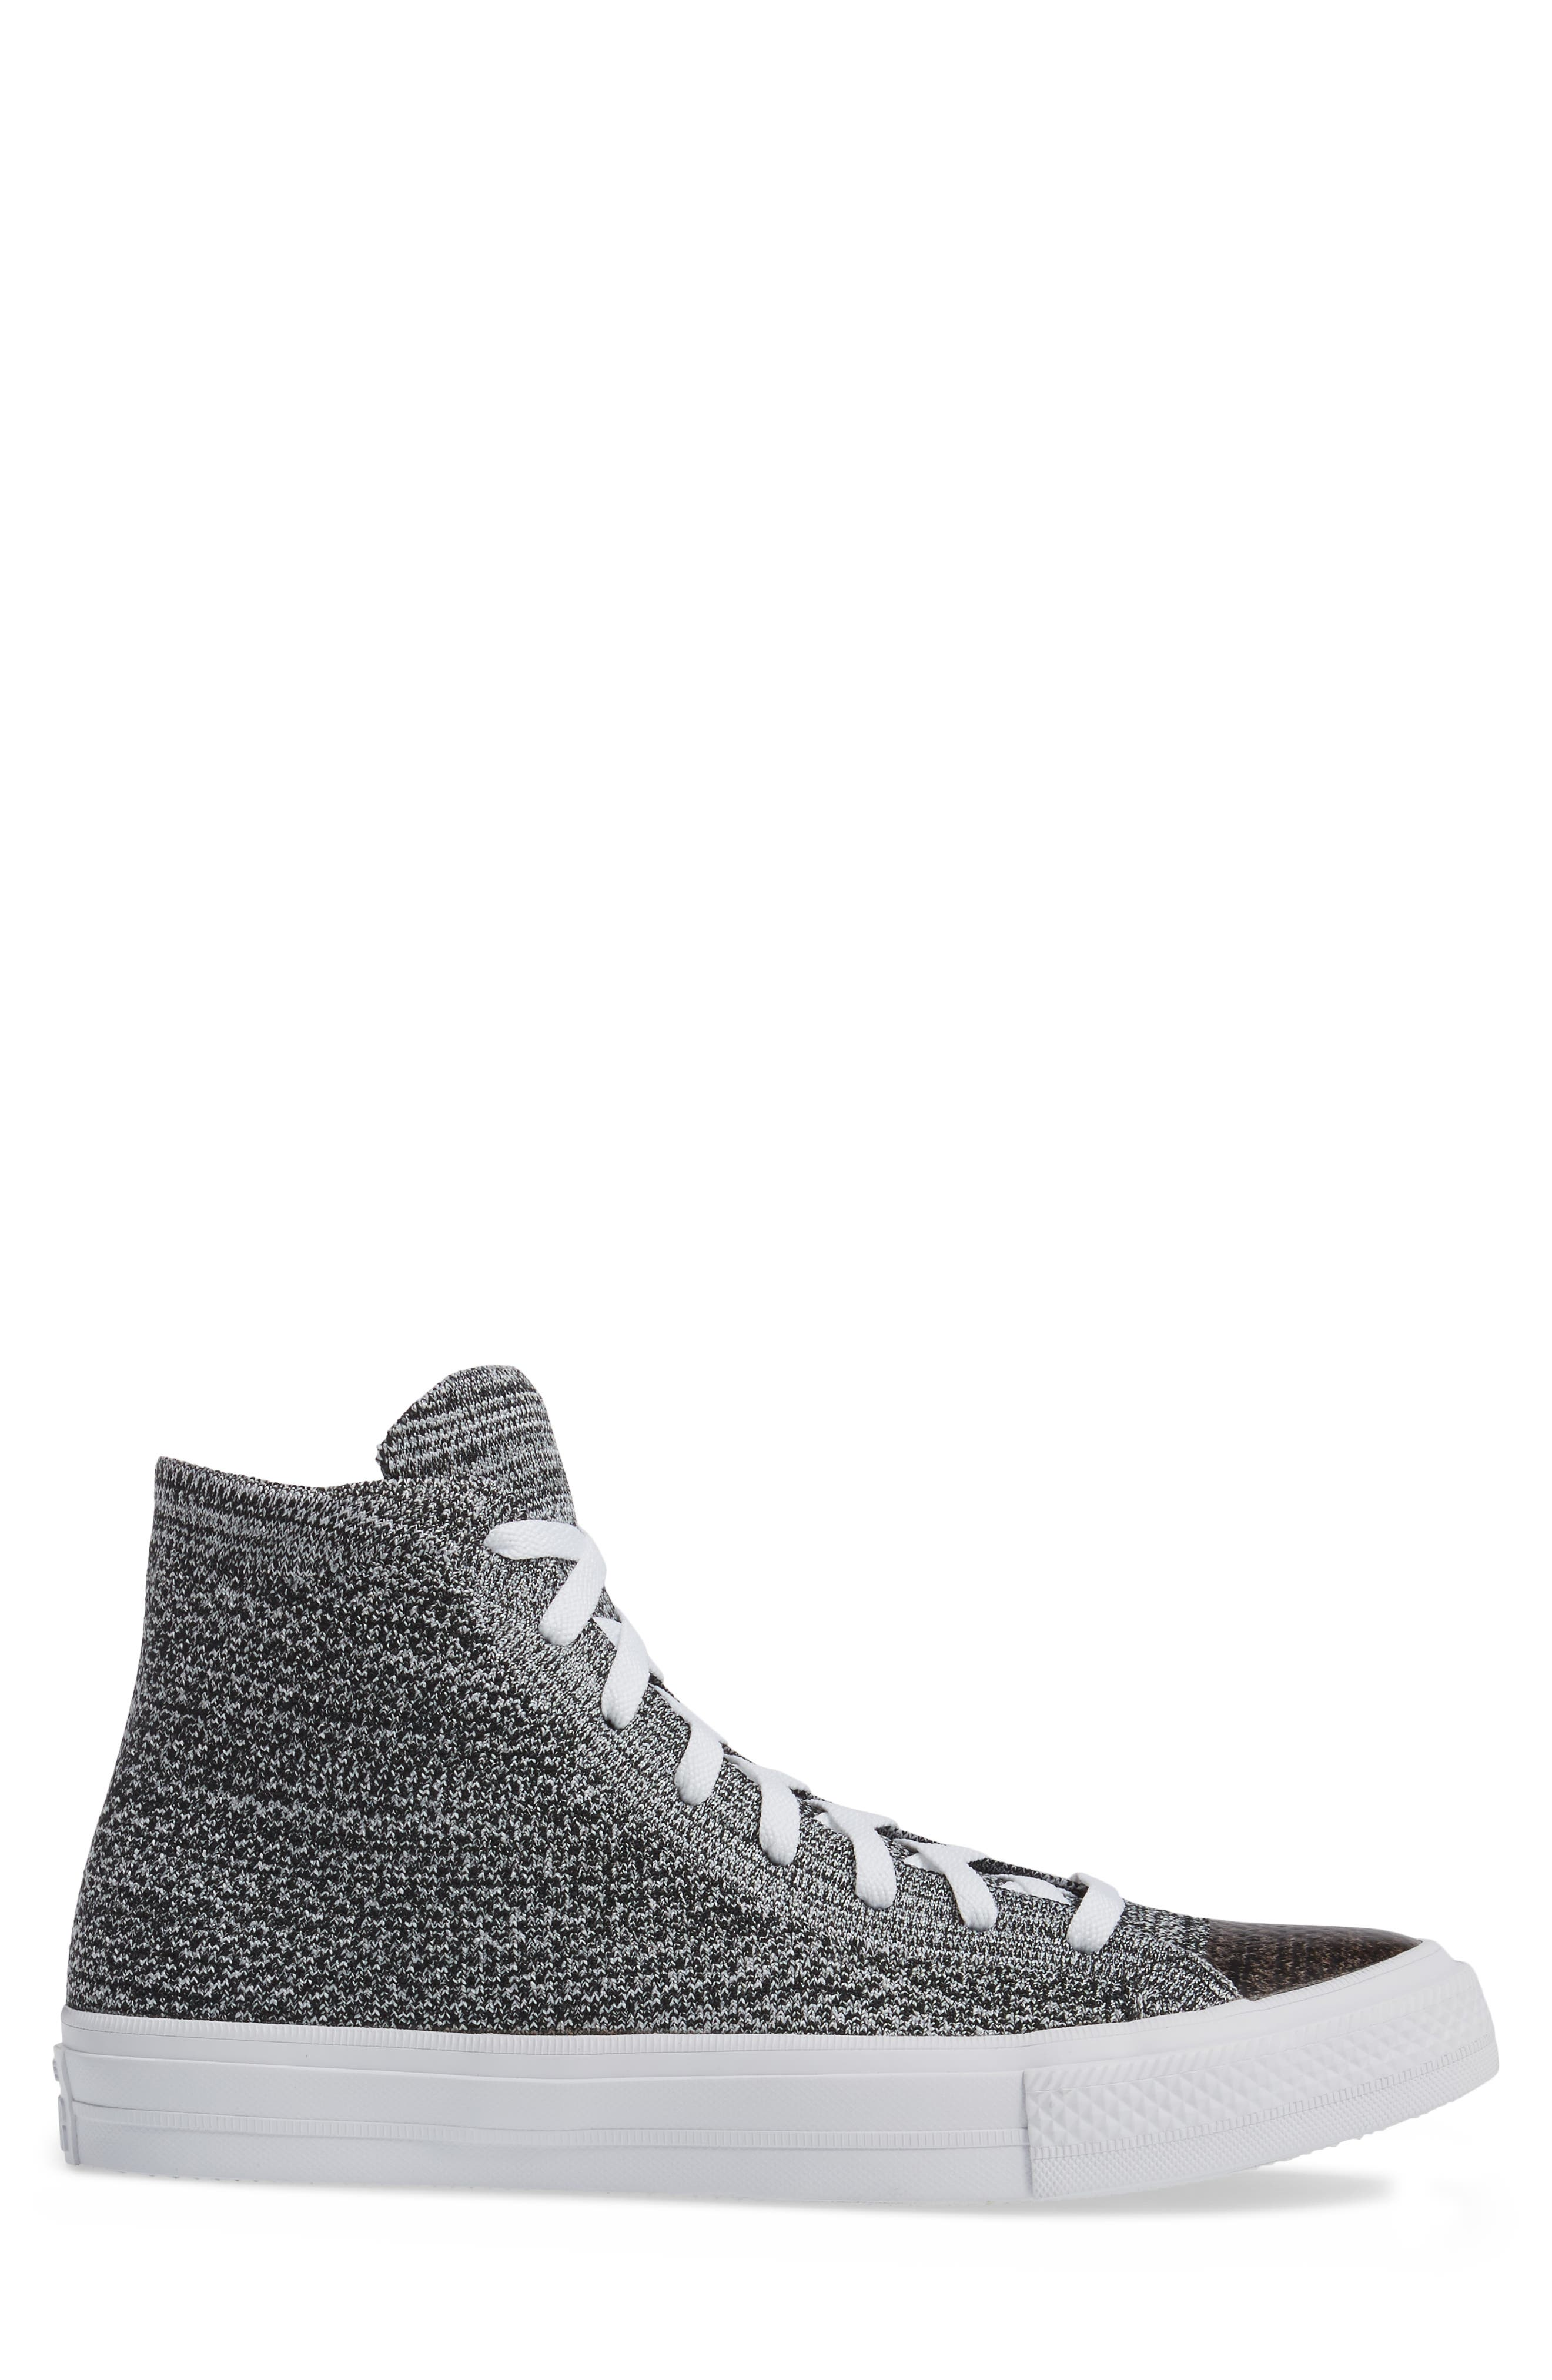 Chuck Taylor<sup>®</sup> All Star<sup>®</sup> Flyknit Hi Sneaker,                             Alternate thumbnail 14, color,